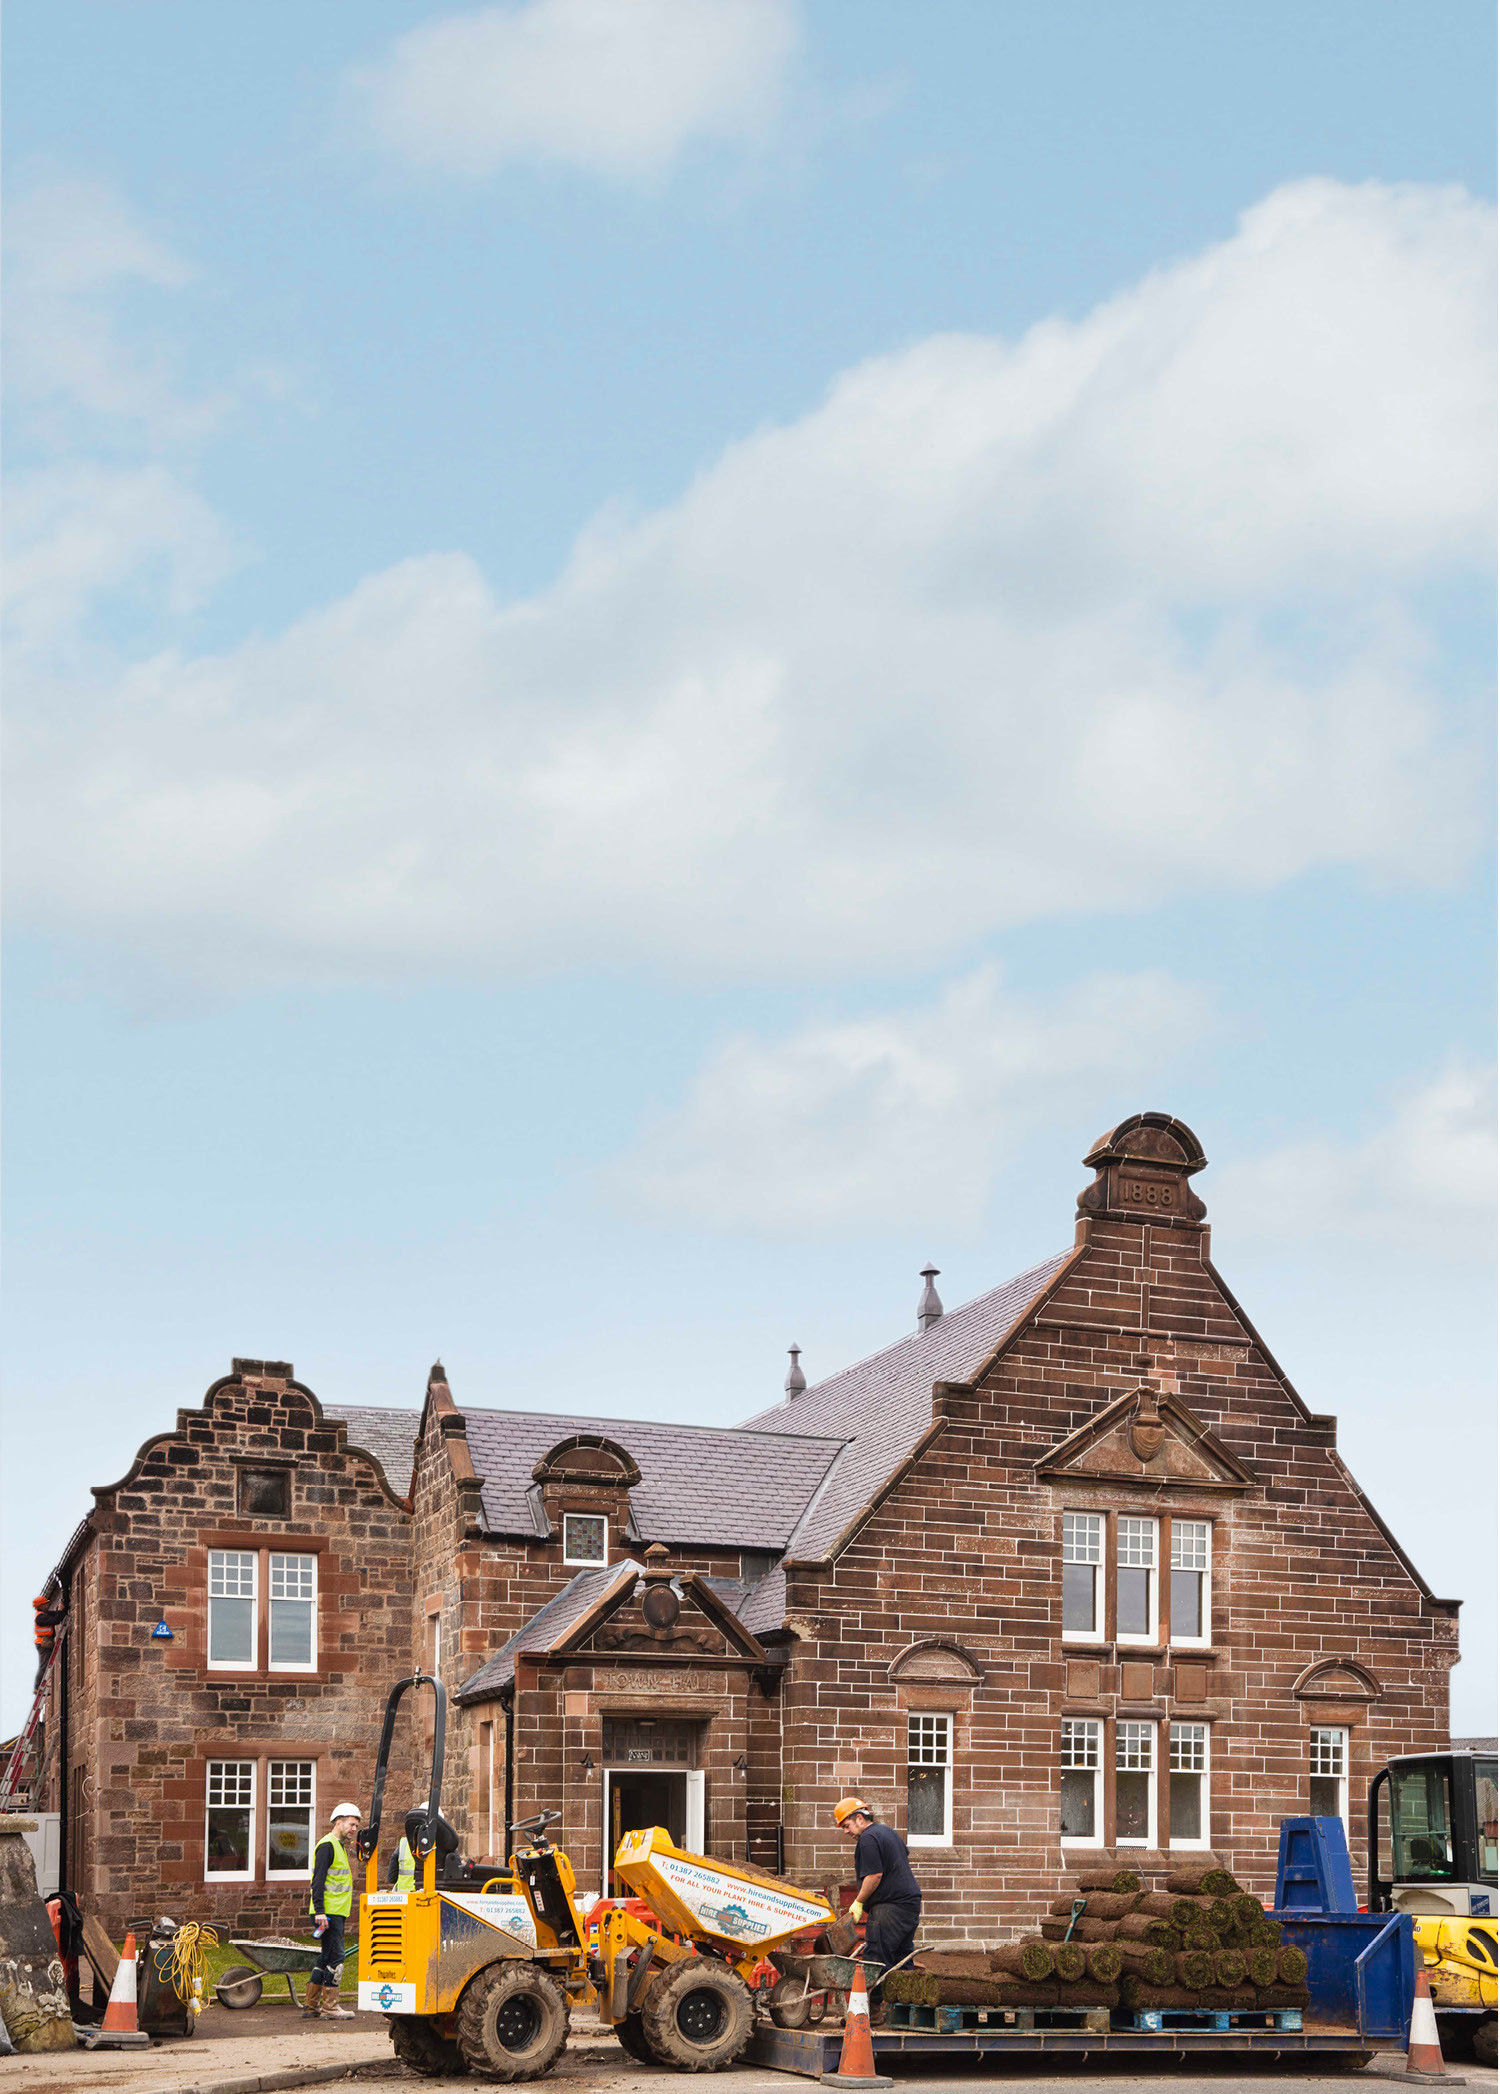 Image of the exterior of New Cumnock town hall